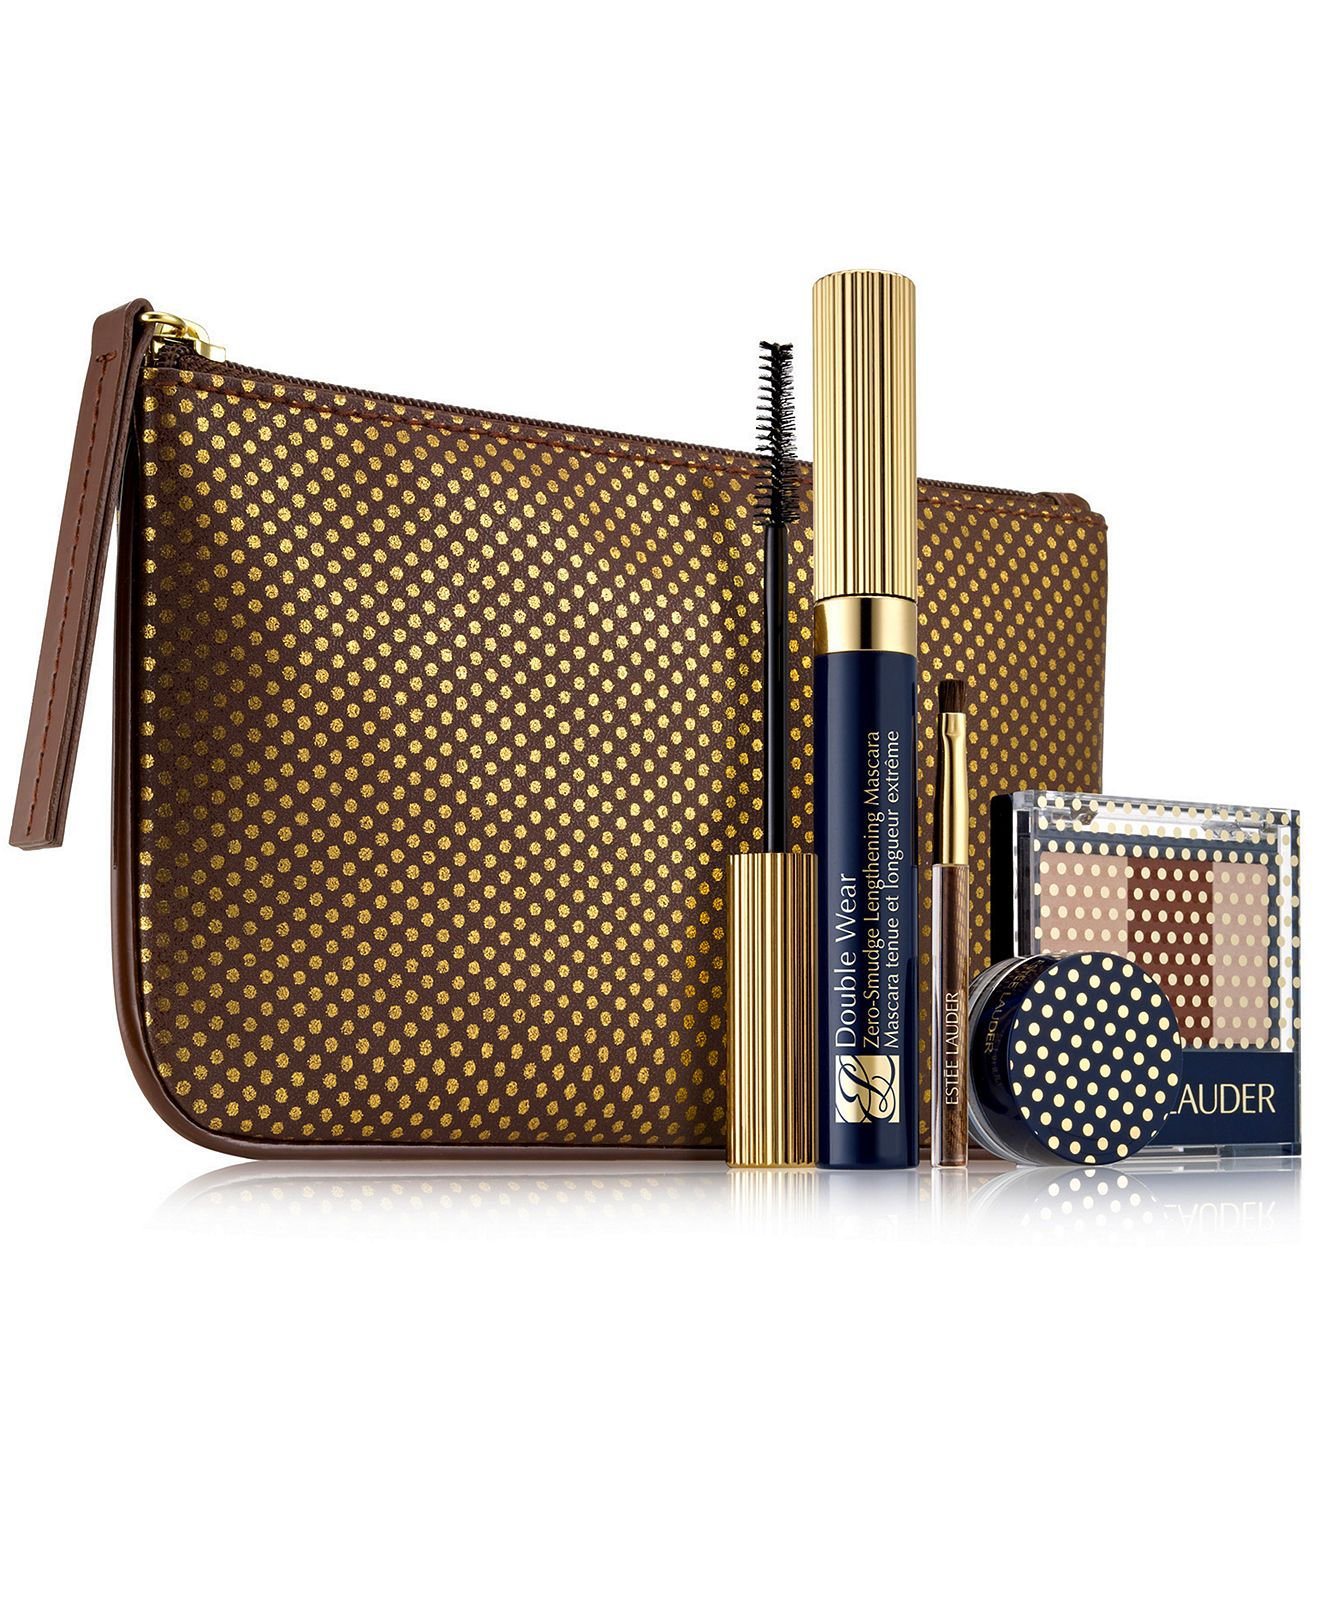 Estée Lauder Delectable Eyes - Smoldering Chocolates Value Set - GIFTS & VALUE SETS - Beauty - Macy's